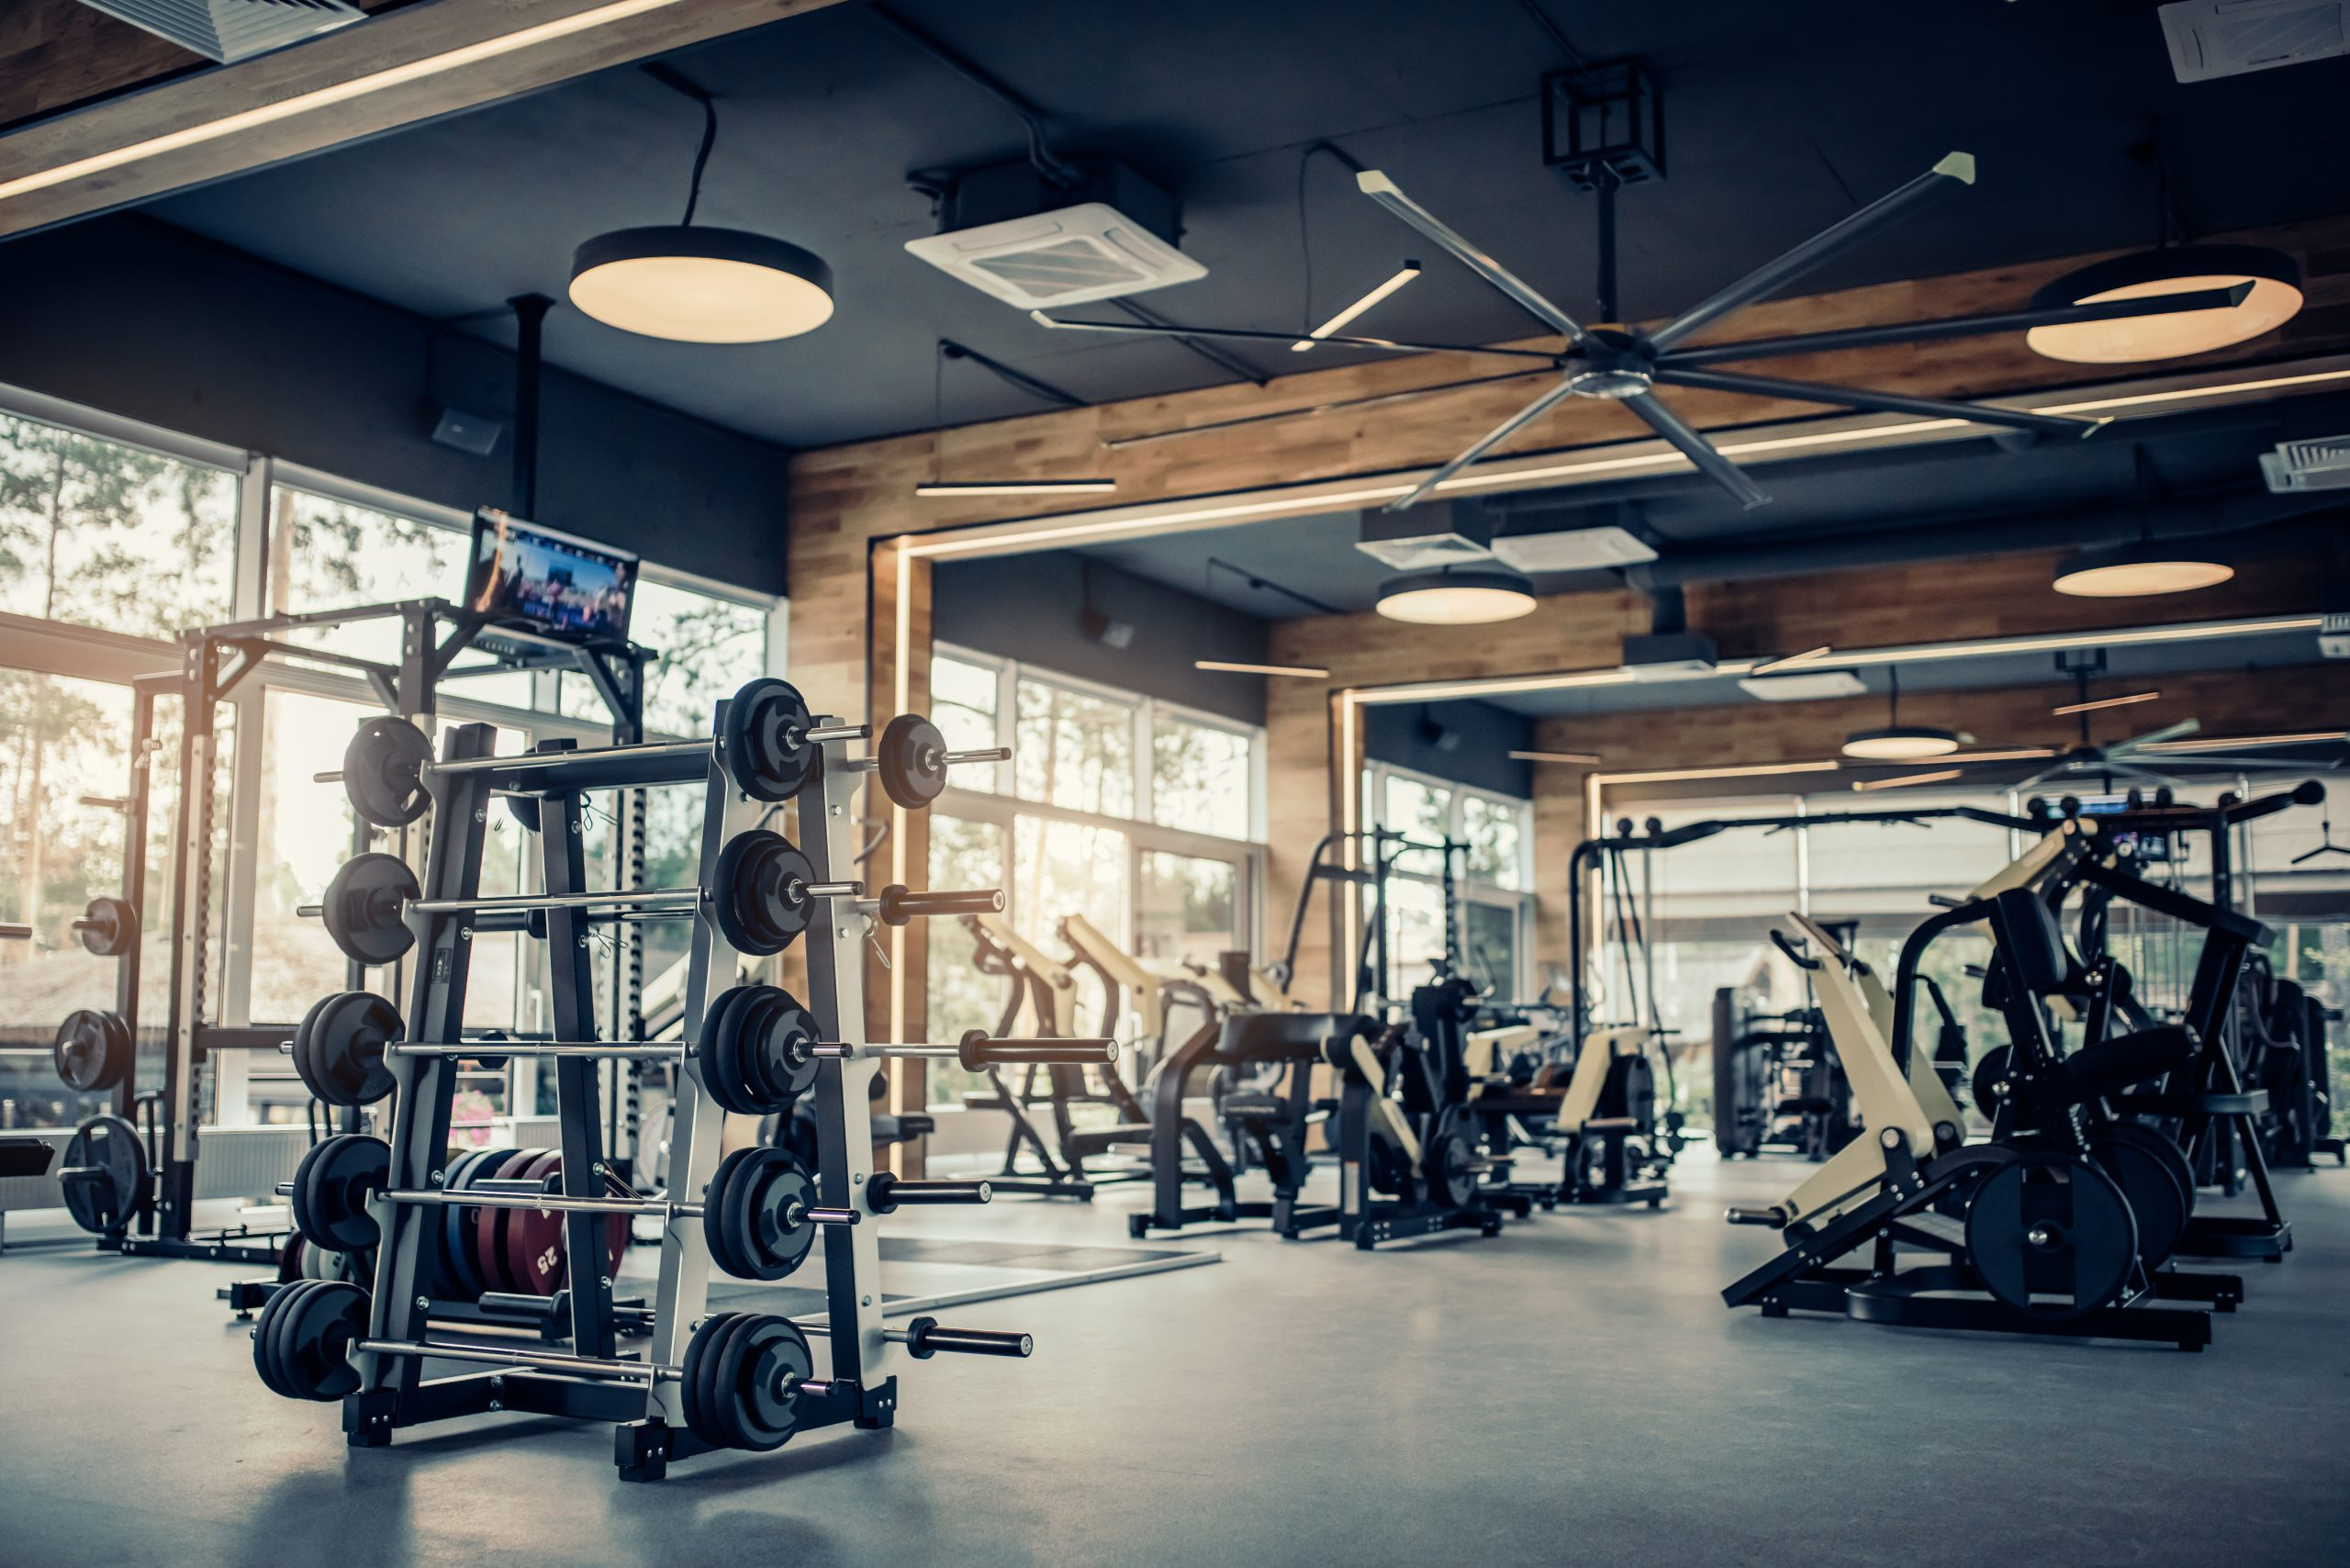 Modern,Light,Gym.,Sports,Equipment,In,Gym.,Barbells,Of,Different